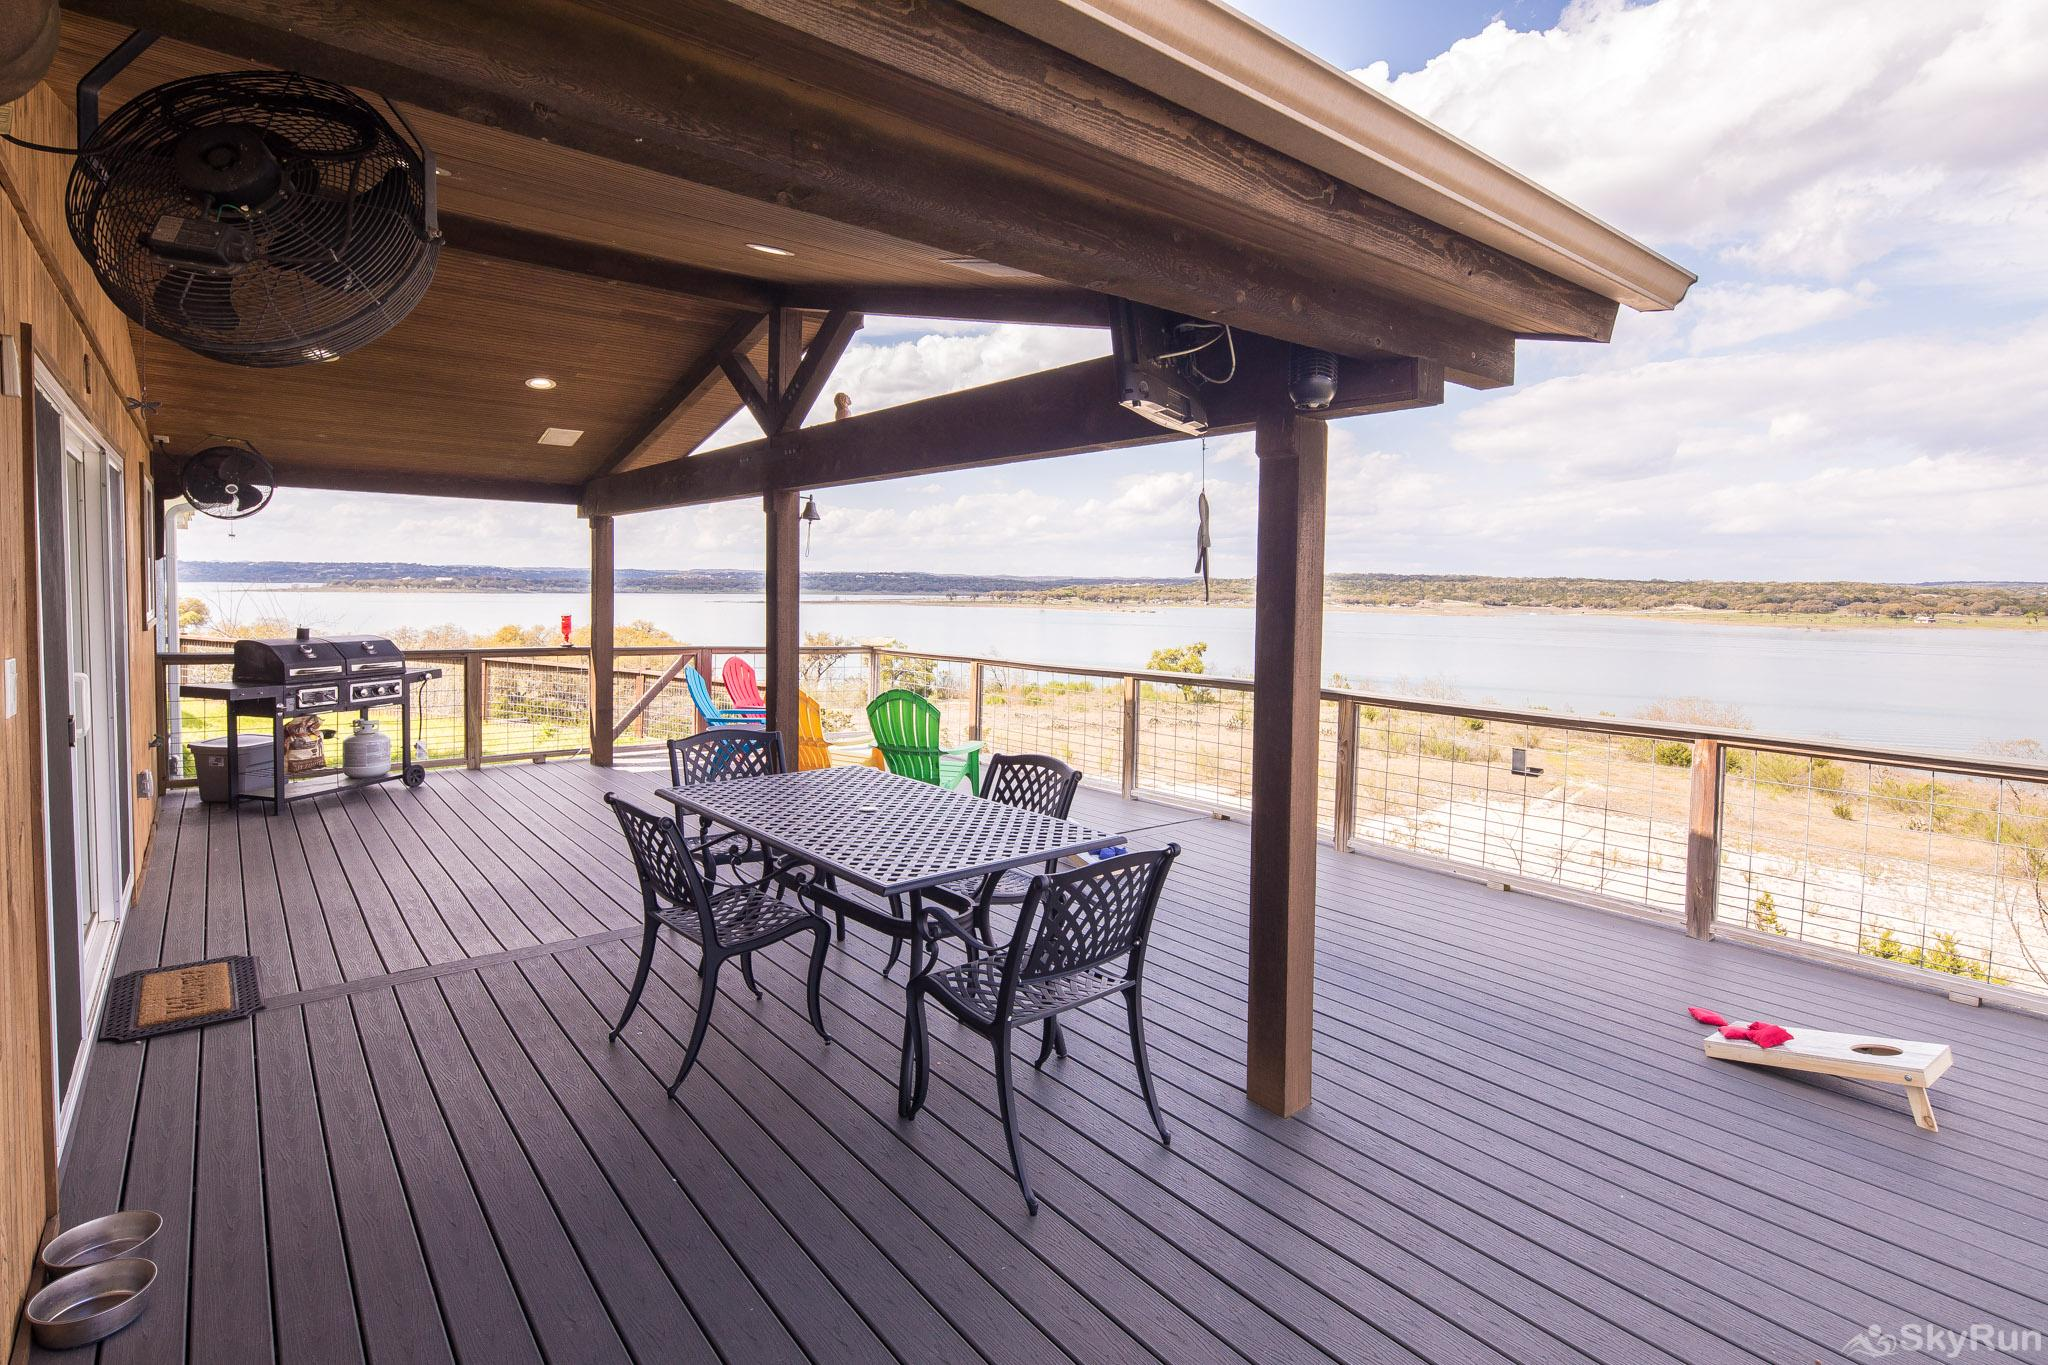 LEDGEROCK POINTE Spacious deck with sweeping 180 degree lake view